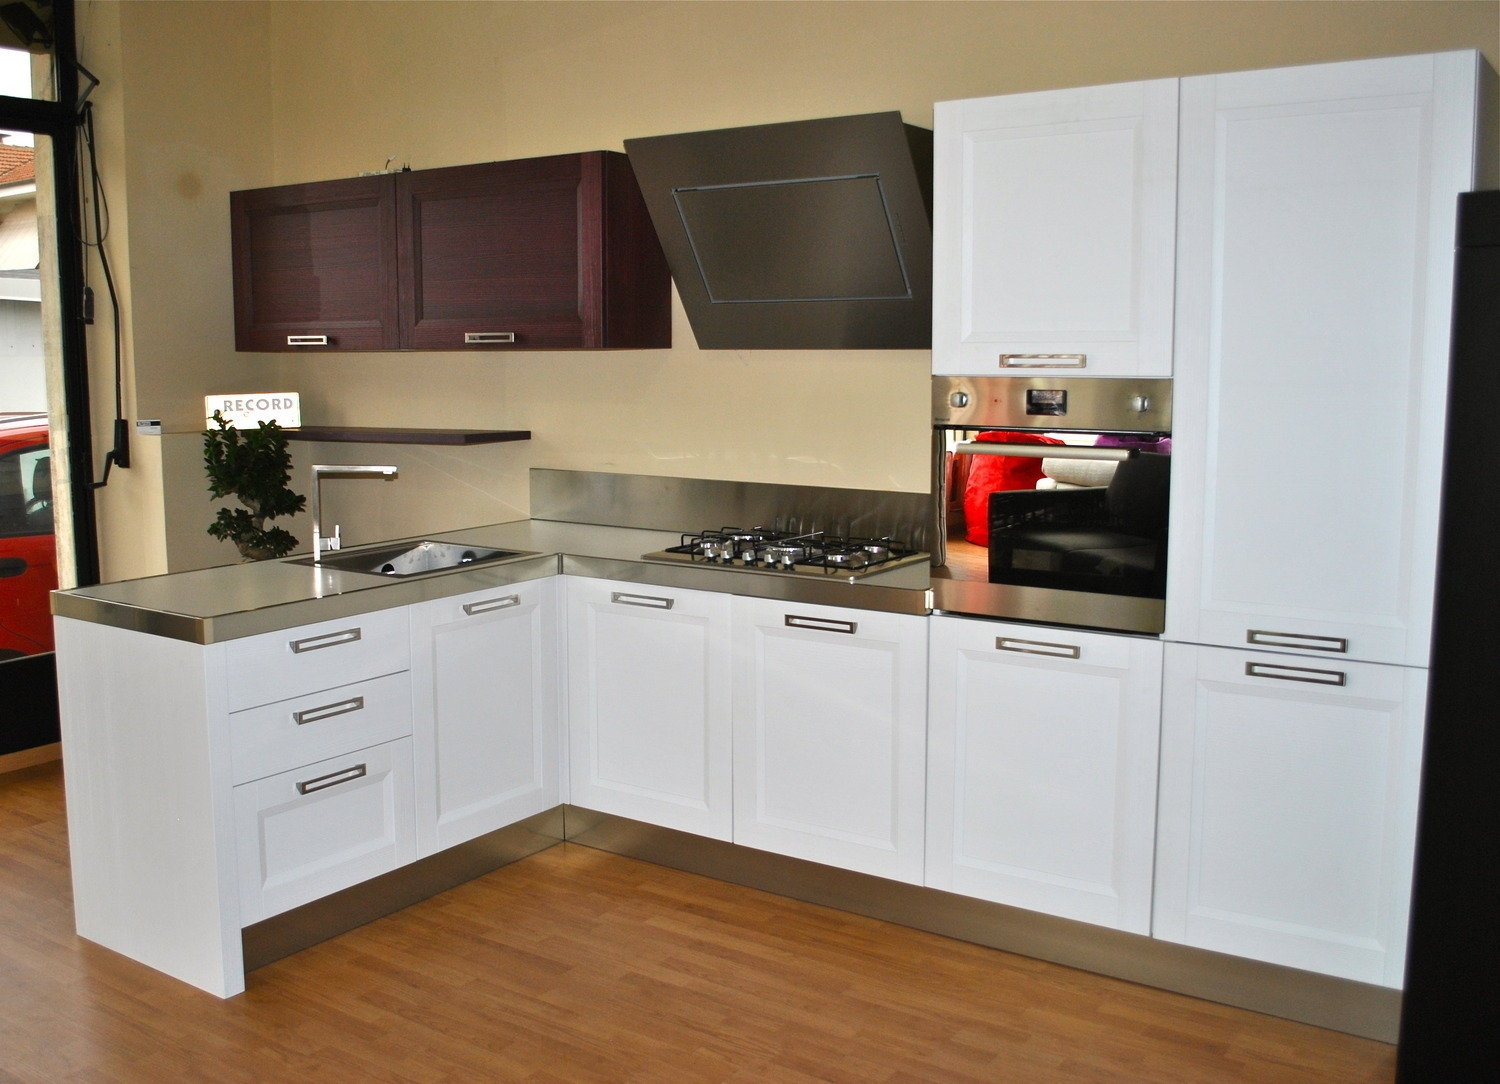 Cucine Ad Angolo Dwg. Latest Best With Cucine Ad Angolo Dwg ...